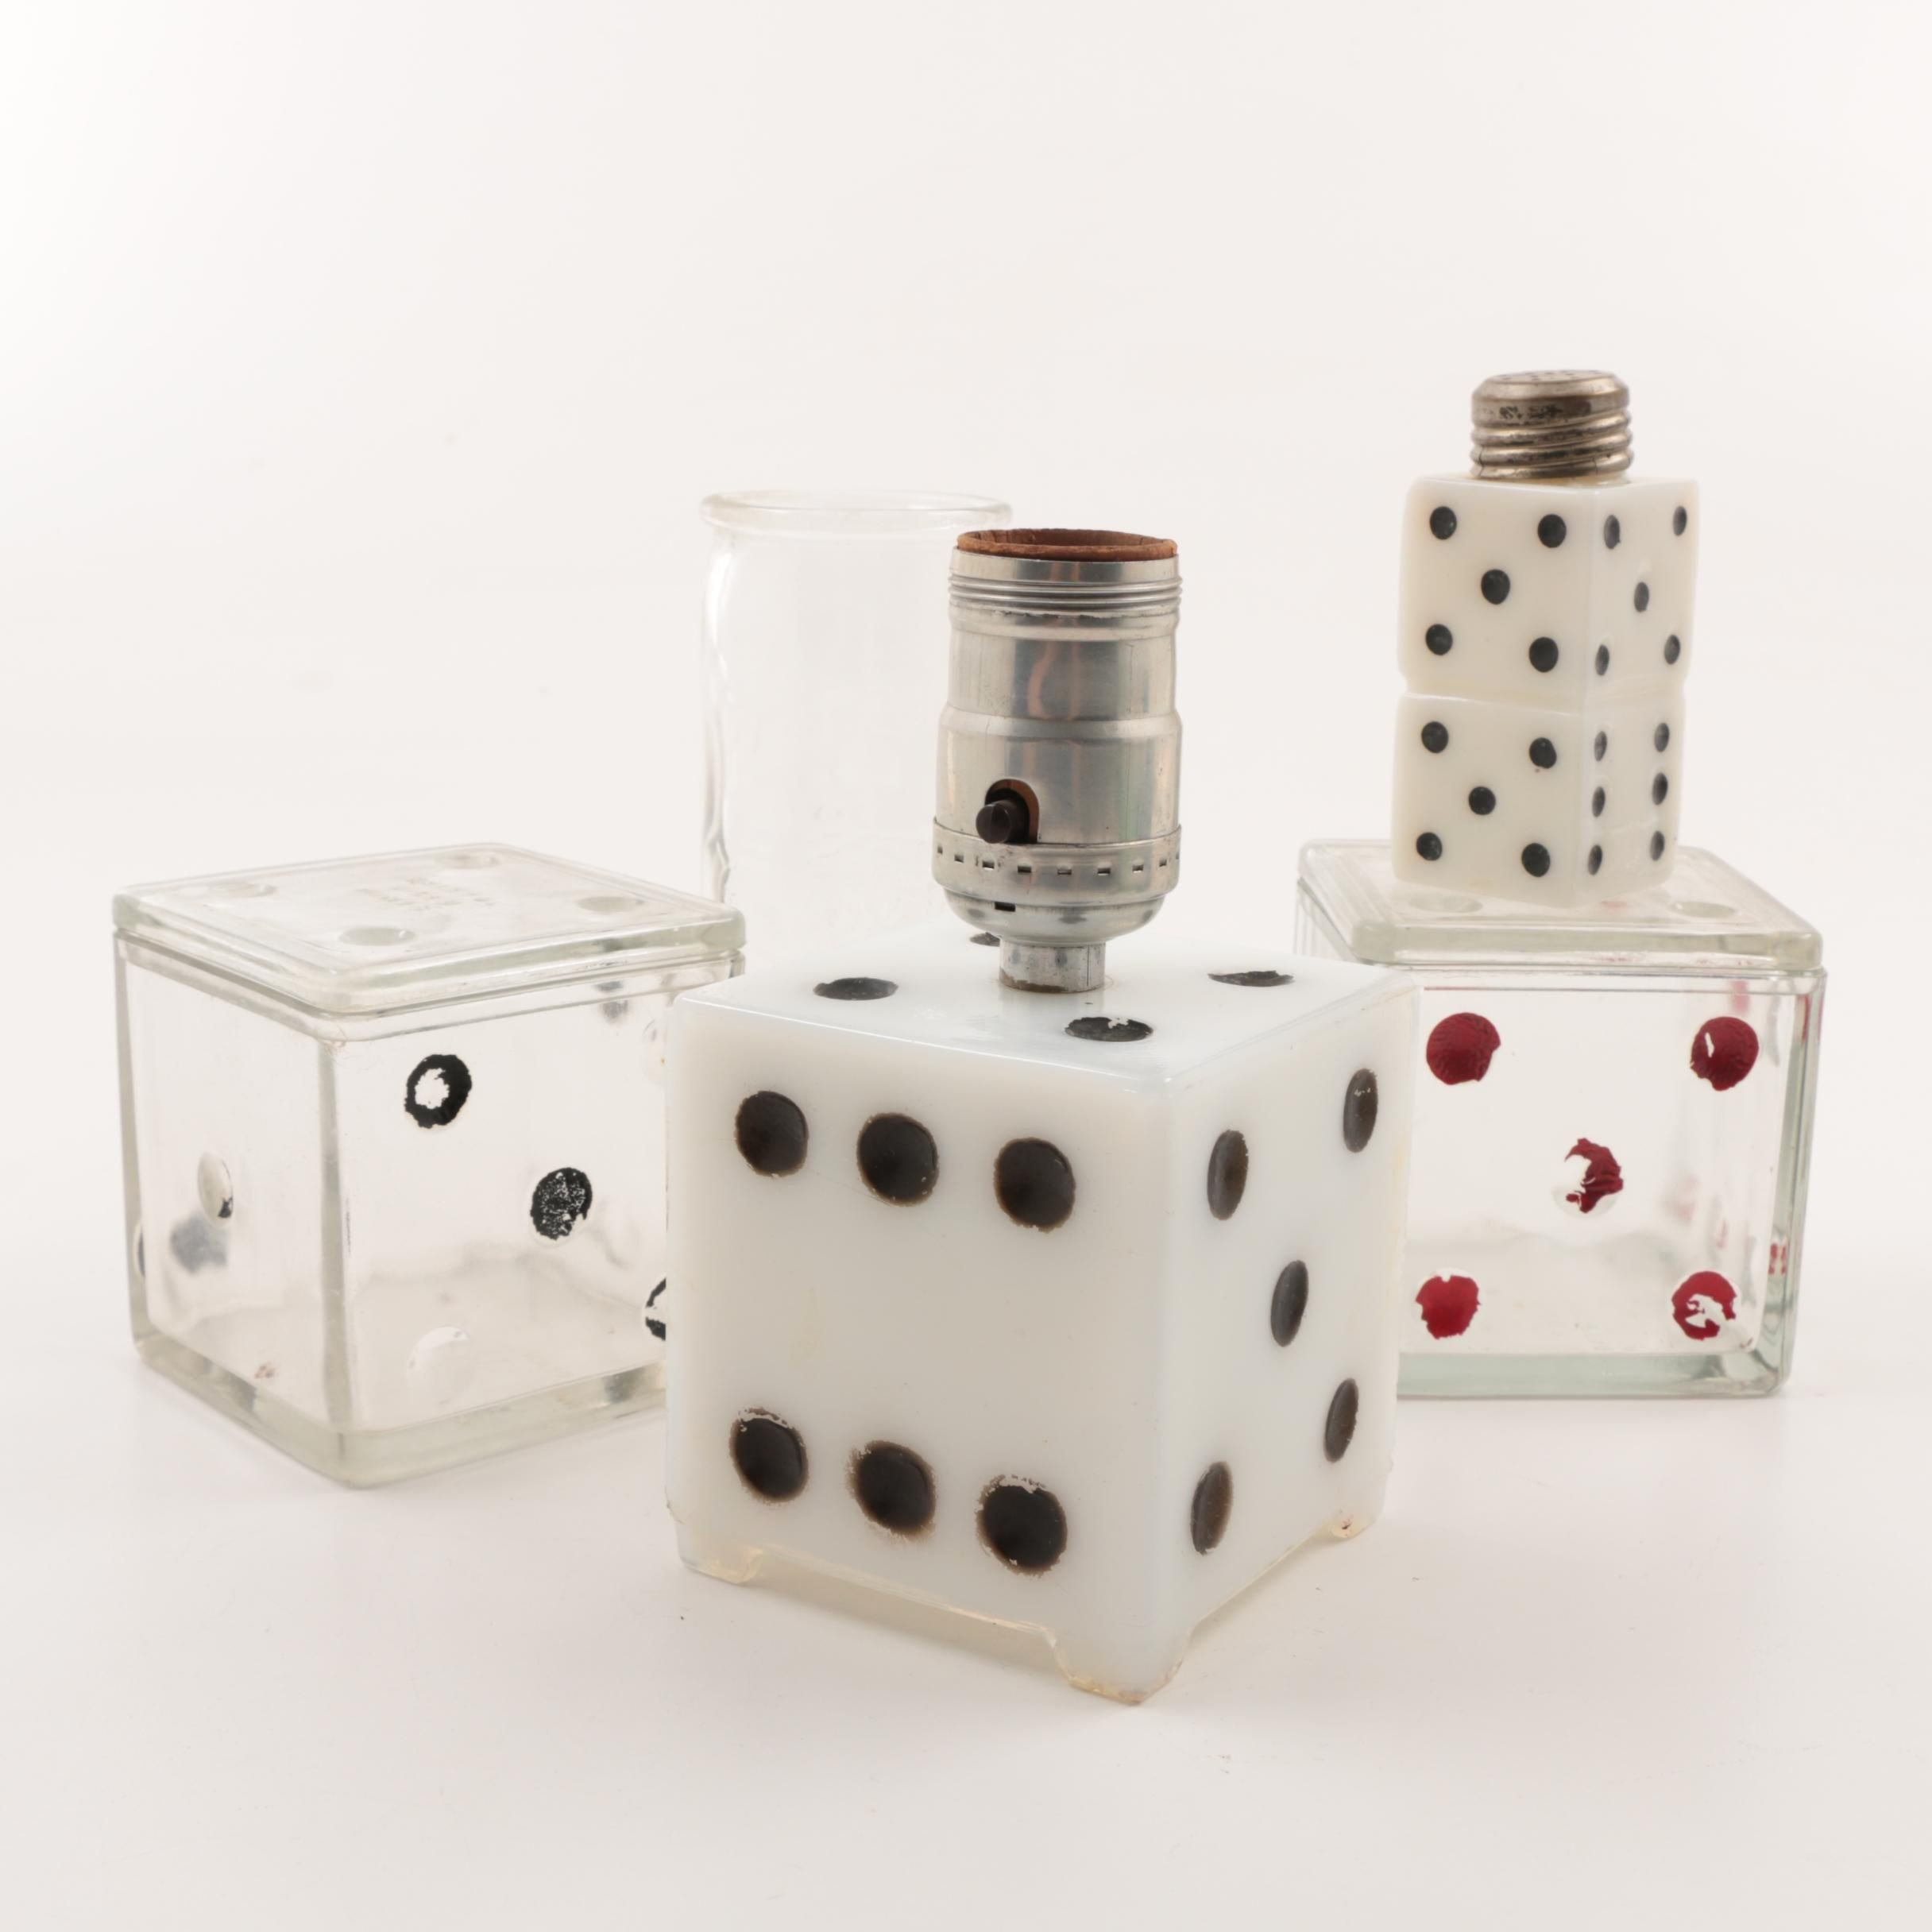 Vintage Pressed Glass Dice Boxes, Salt Shaker, and Table Lamp